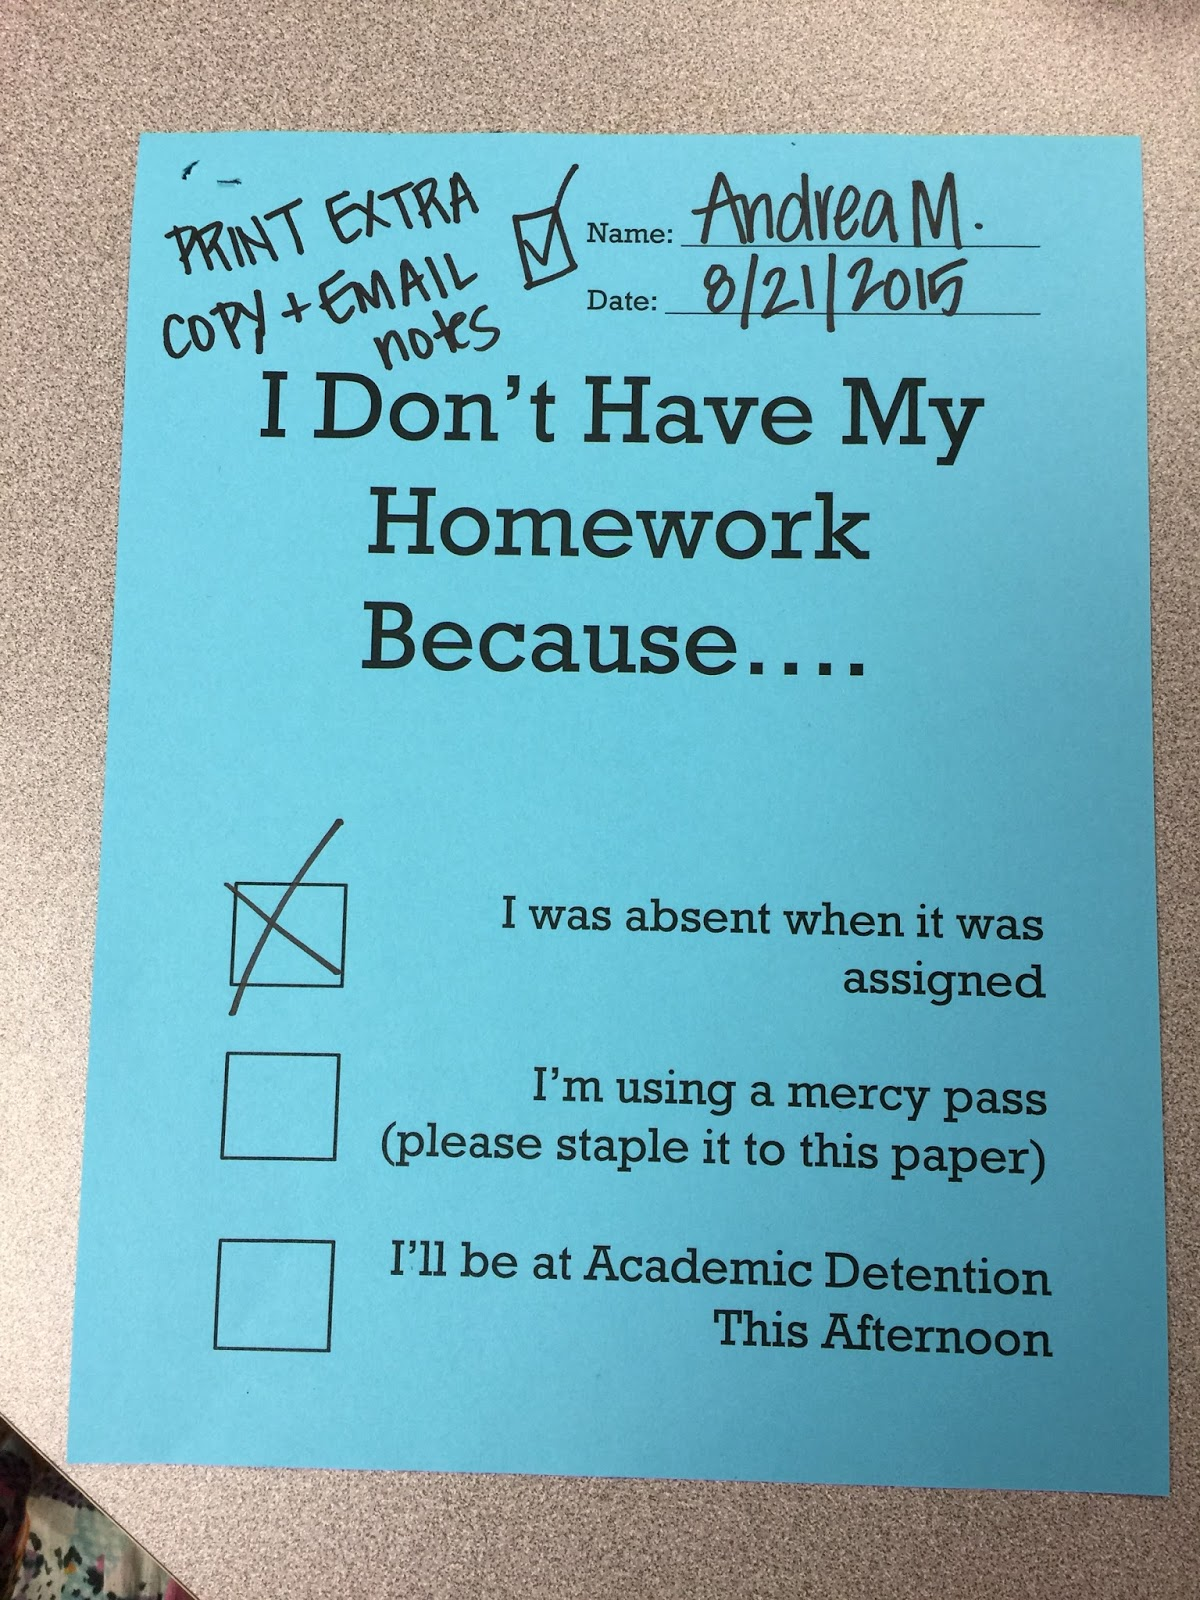 Pay for homework answers